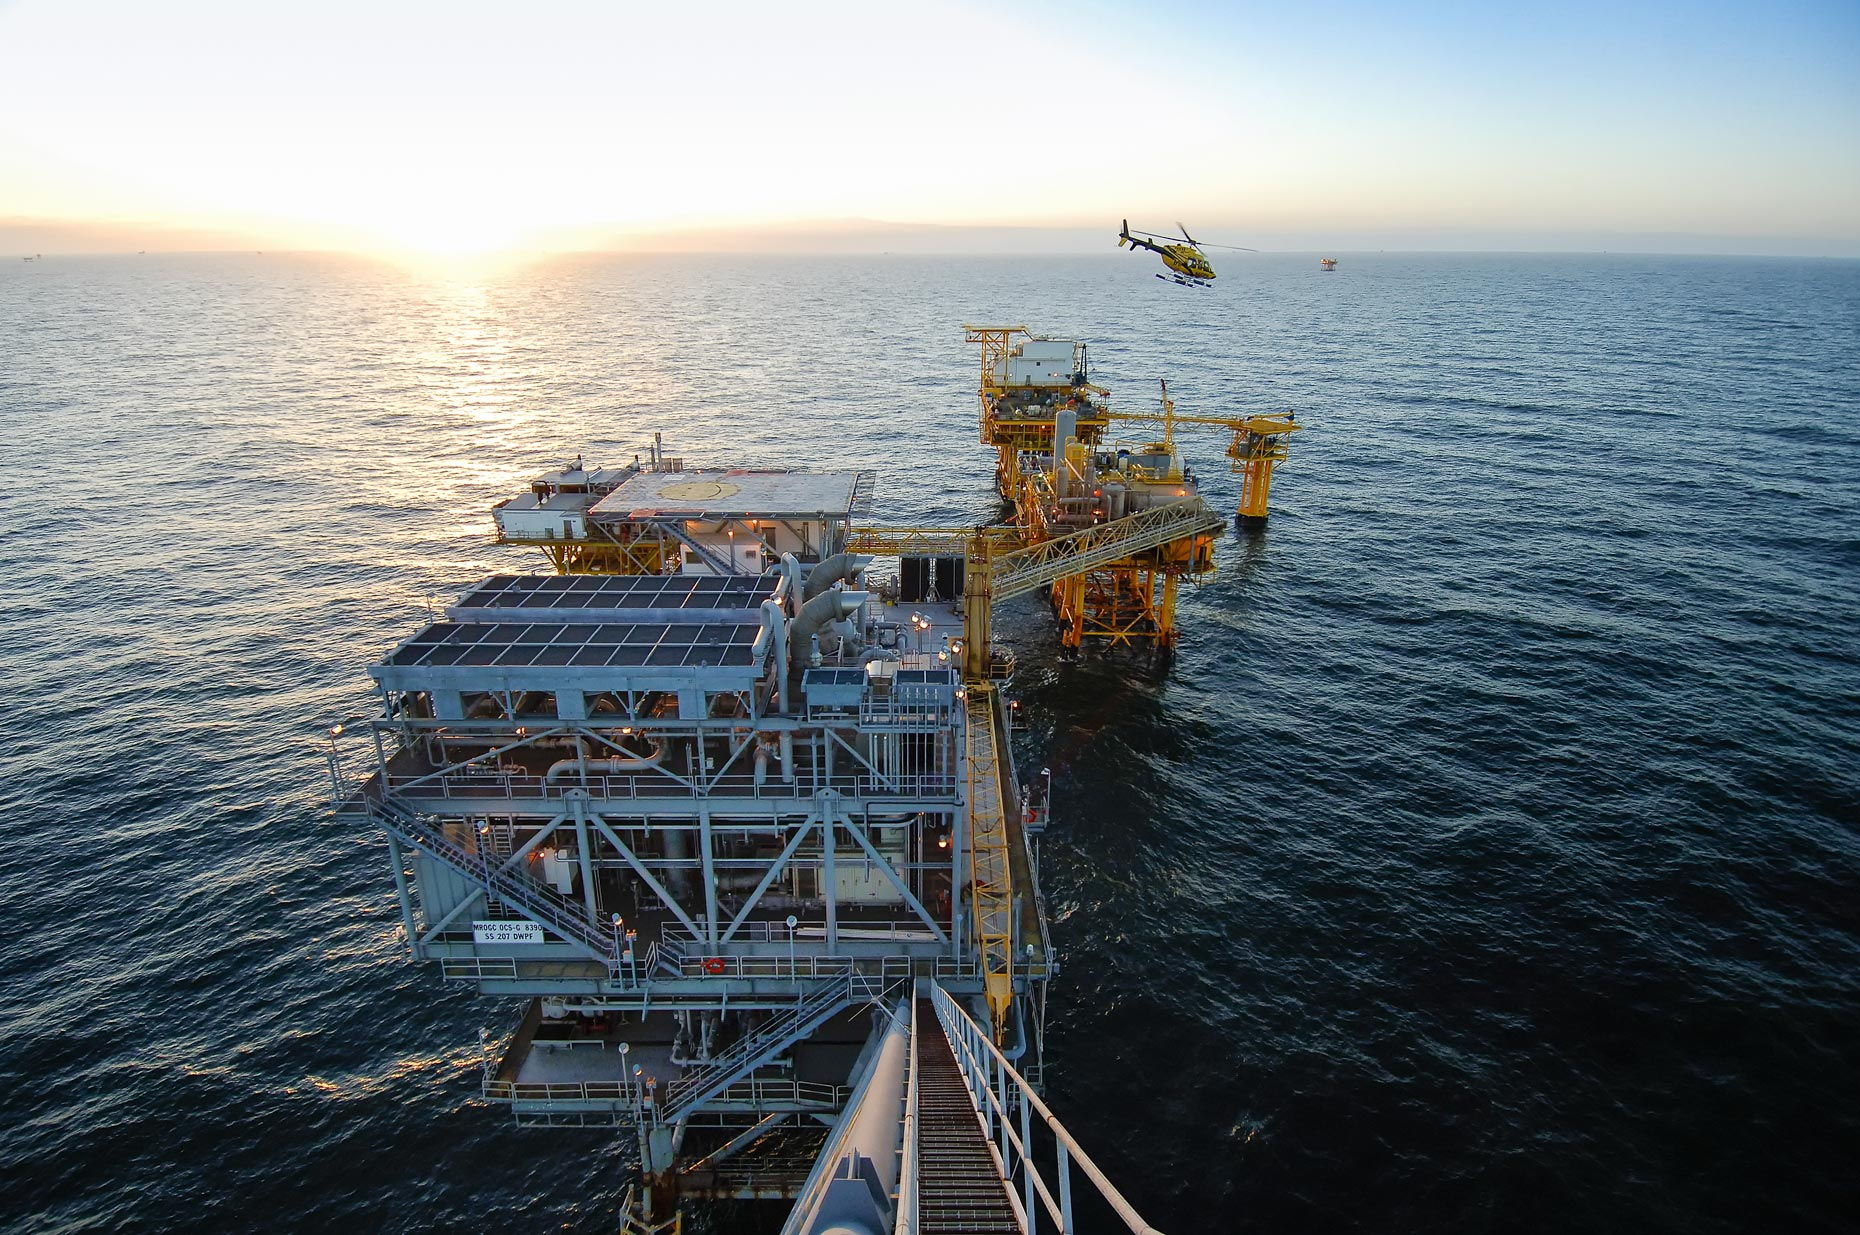 Offshore platform photographed from the boom flare, by industrial photographer Kevin Brown.